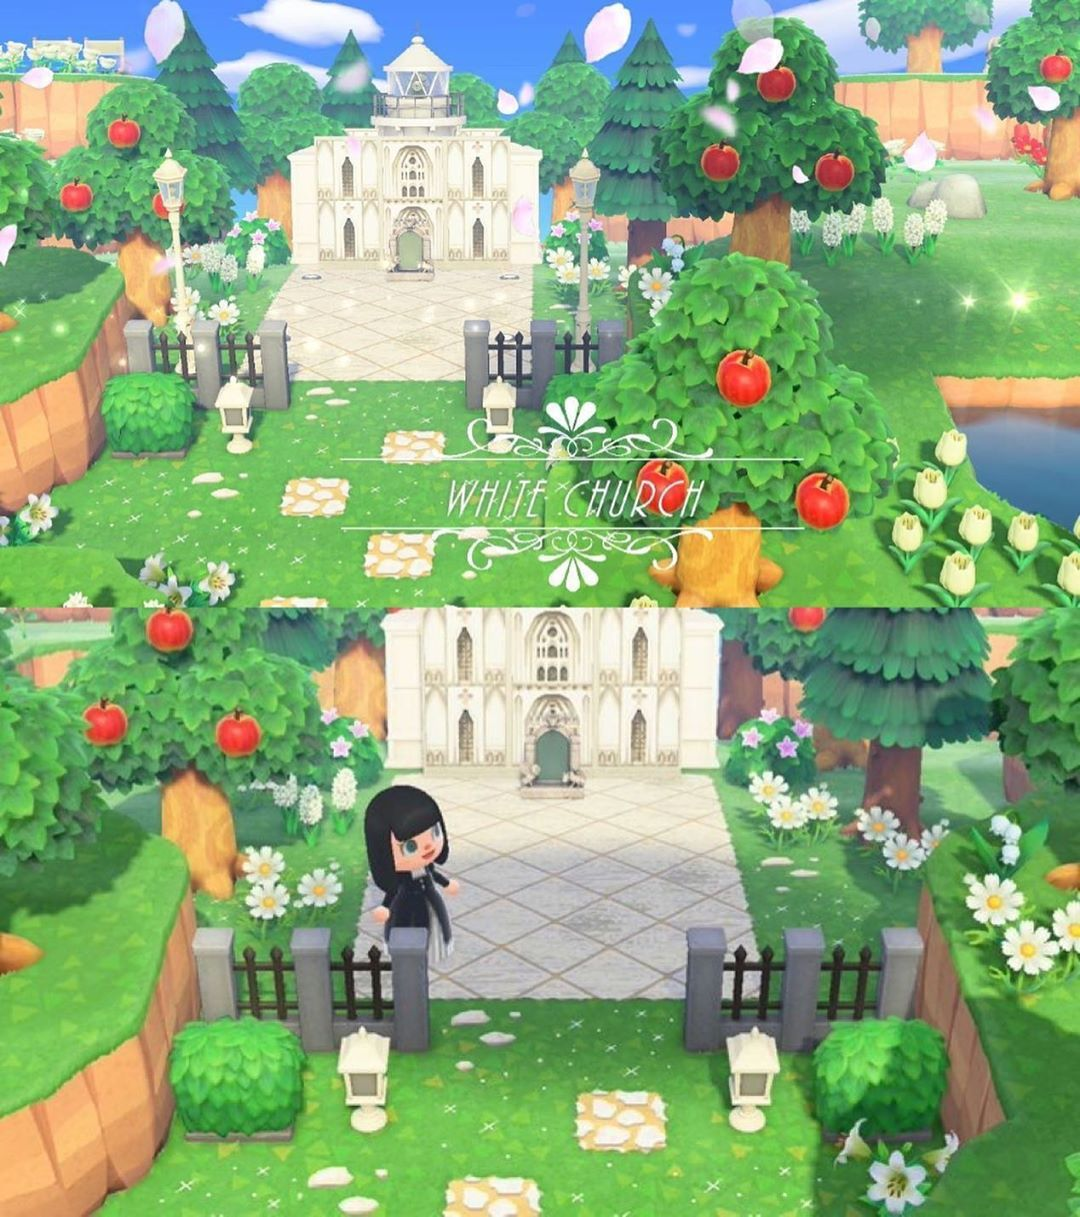 Animal Crossing Store On Instagram The White Church For A Wedding Event Id Ma 6665 9353 5318 In 2020 Animal Crossing New Animal Crossing Animal Crossing Qr